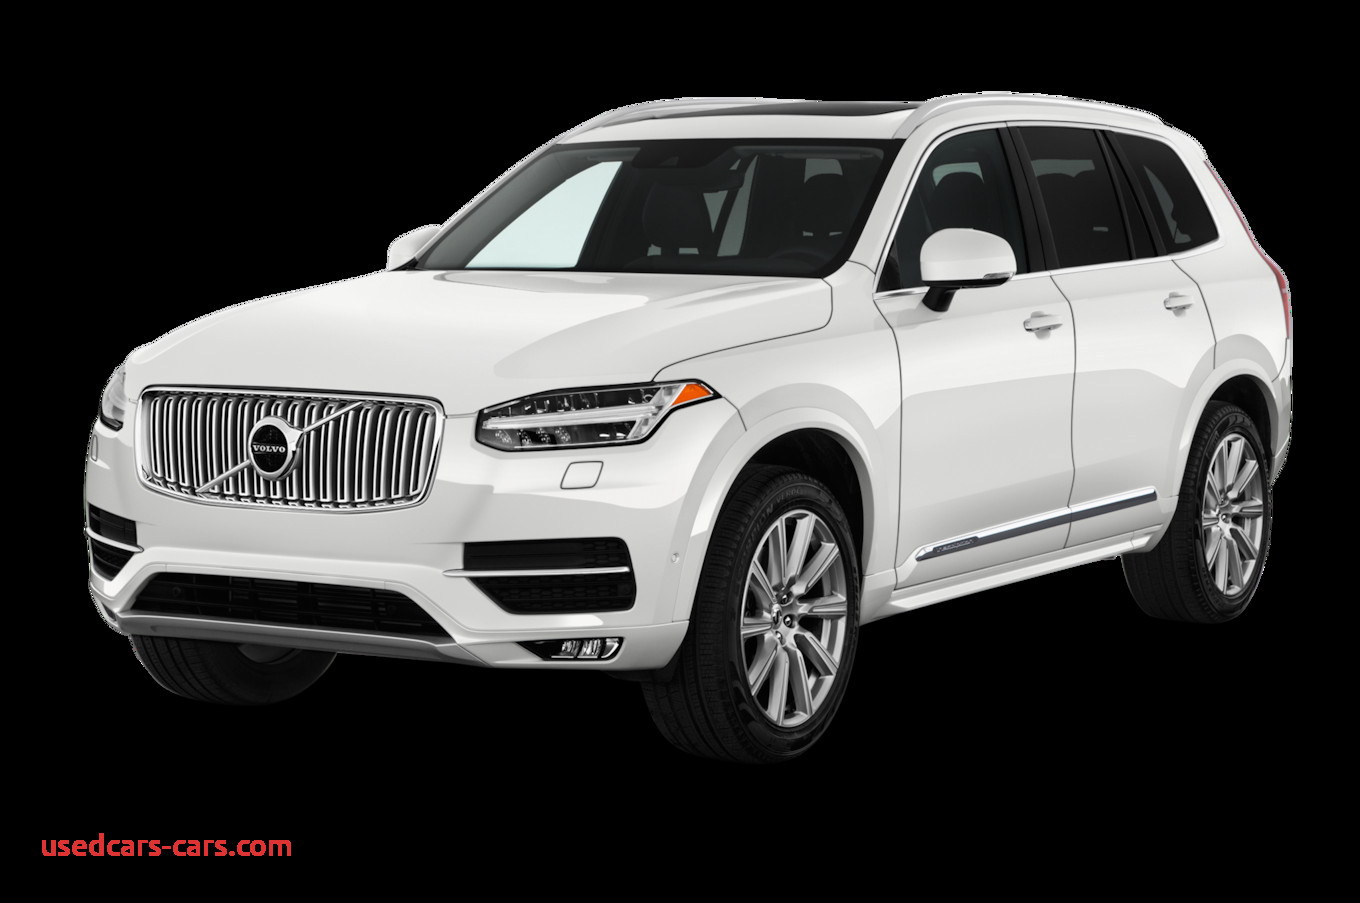 Xc90 Price Lovely 2018 Volvo Xc90 Reviews and Rating Motortrend